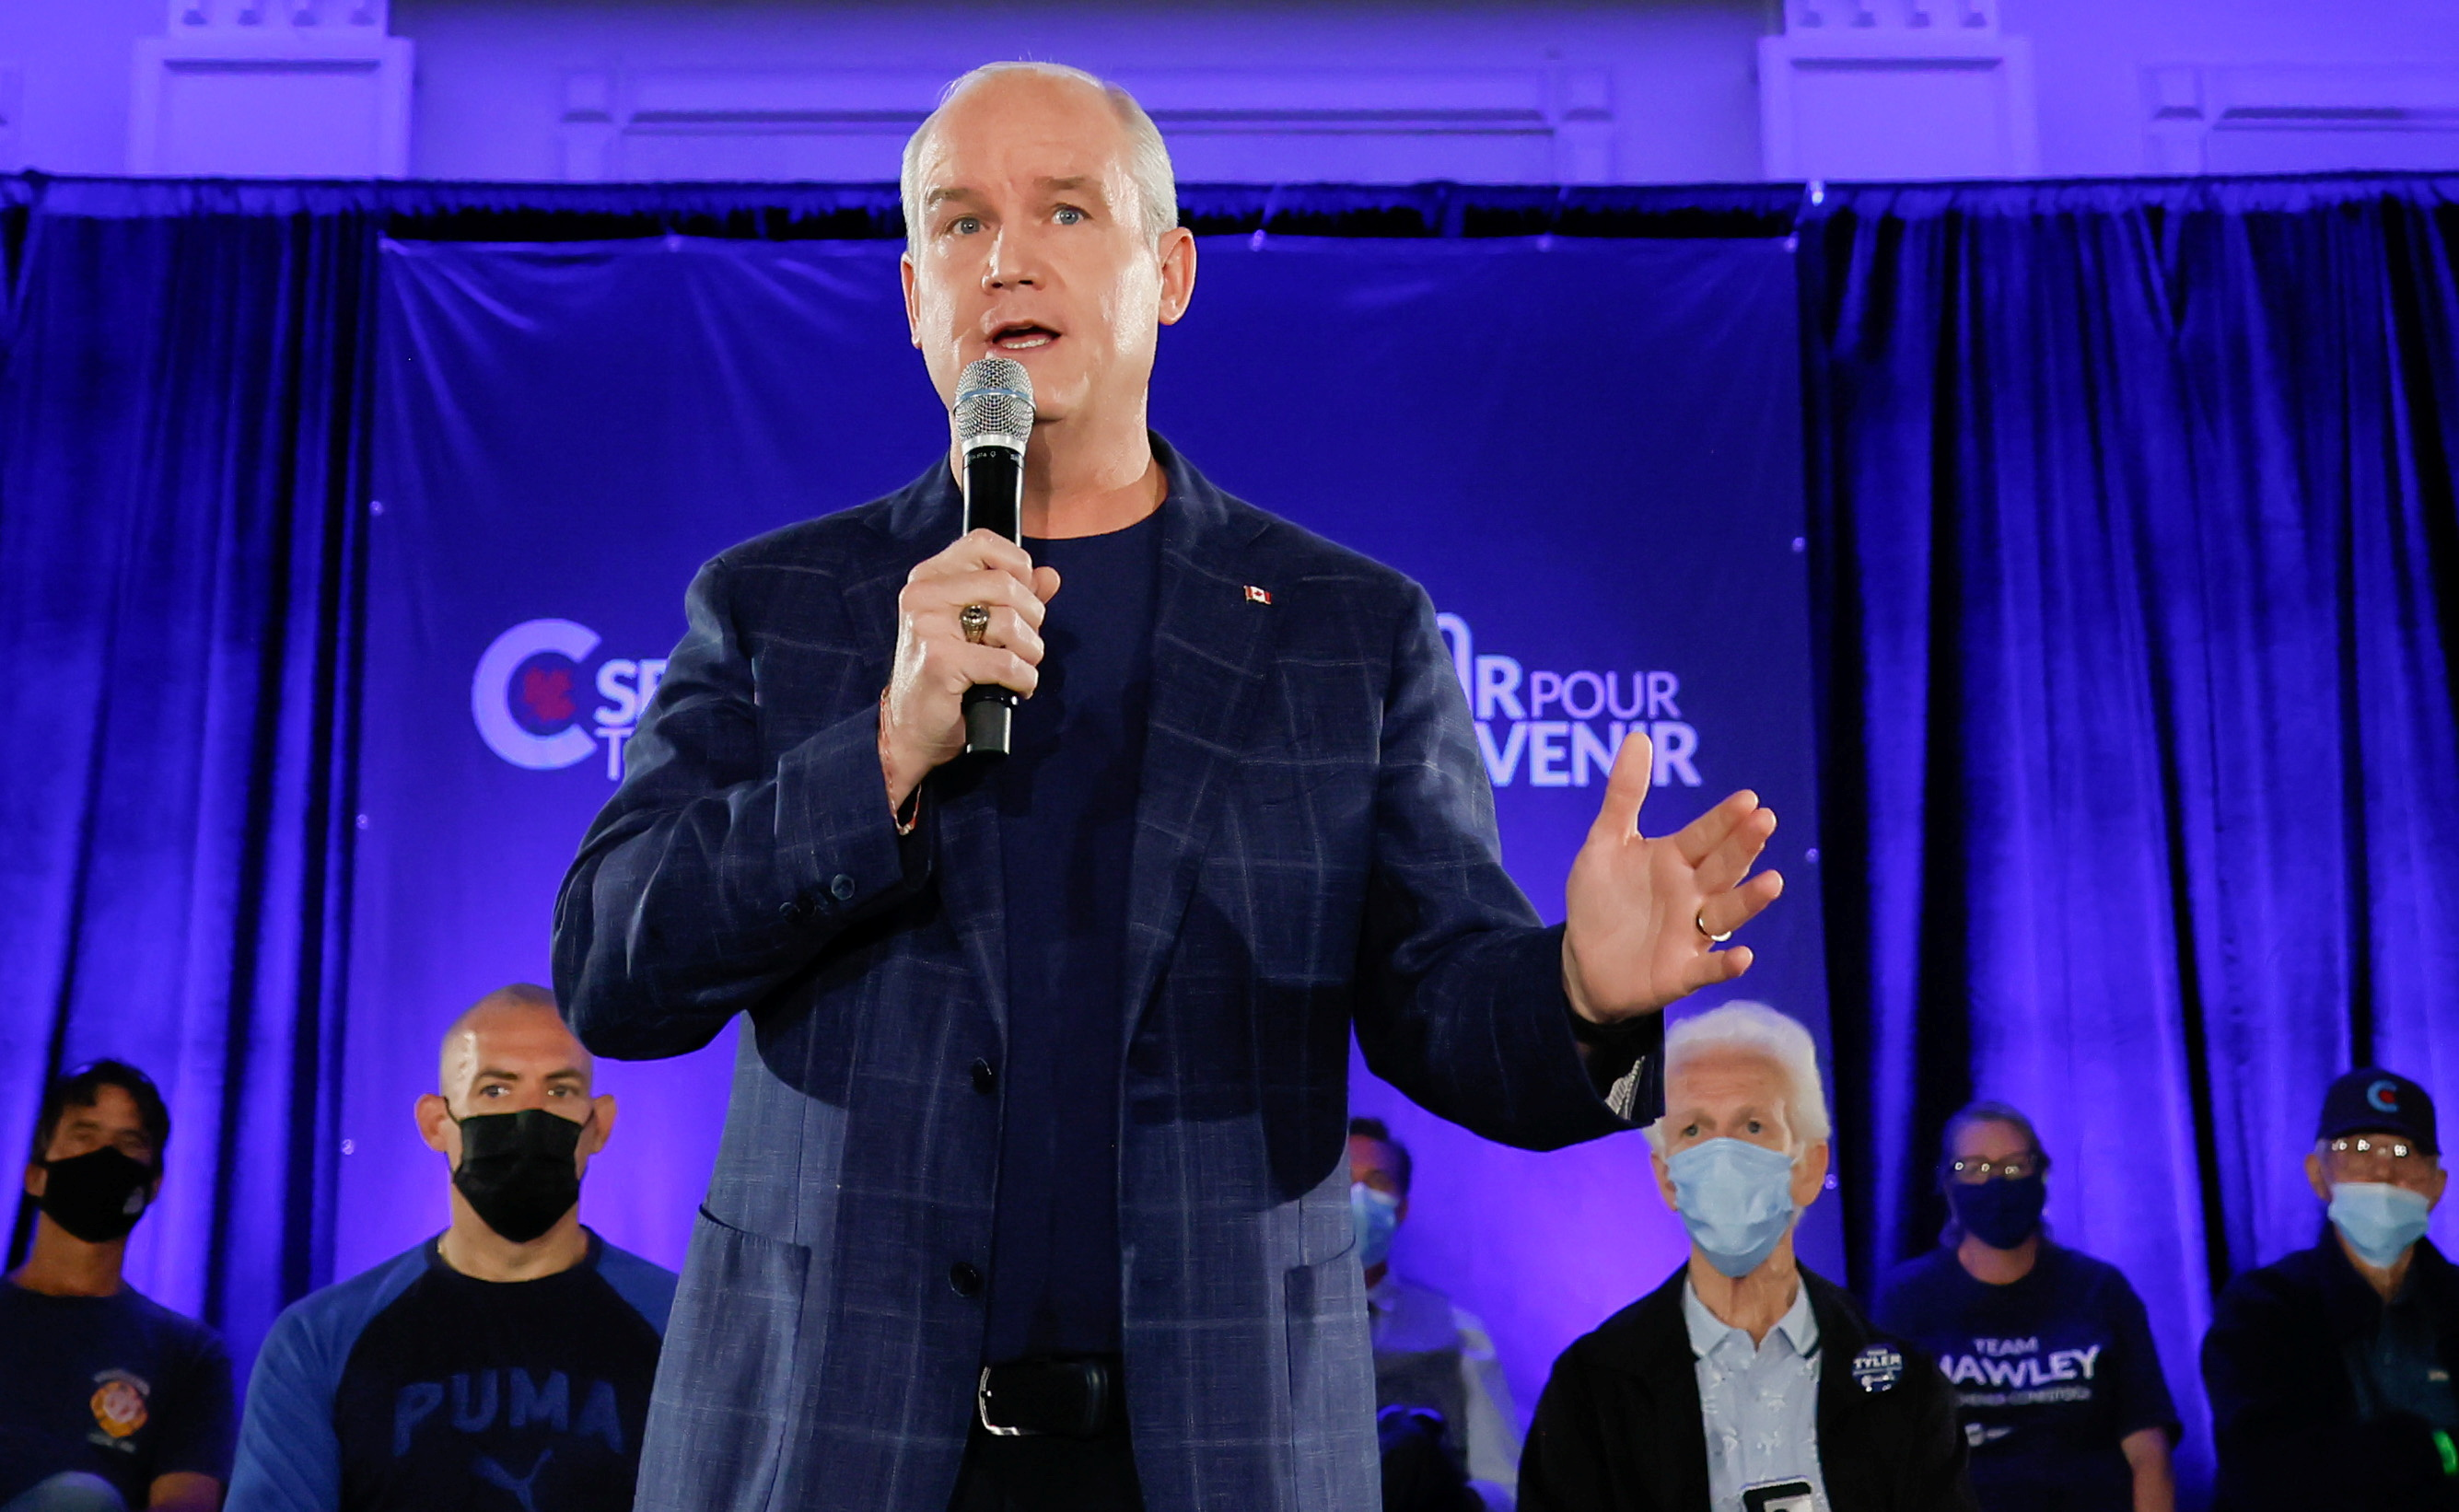 Canada's opposition Conservative Party leader Erin O'Toole speaks during his election campaign tour in Kitchener, Ontario, Canada September 18, 2021. REUTERS/Blair Gable